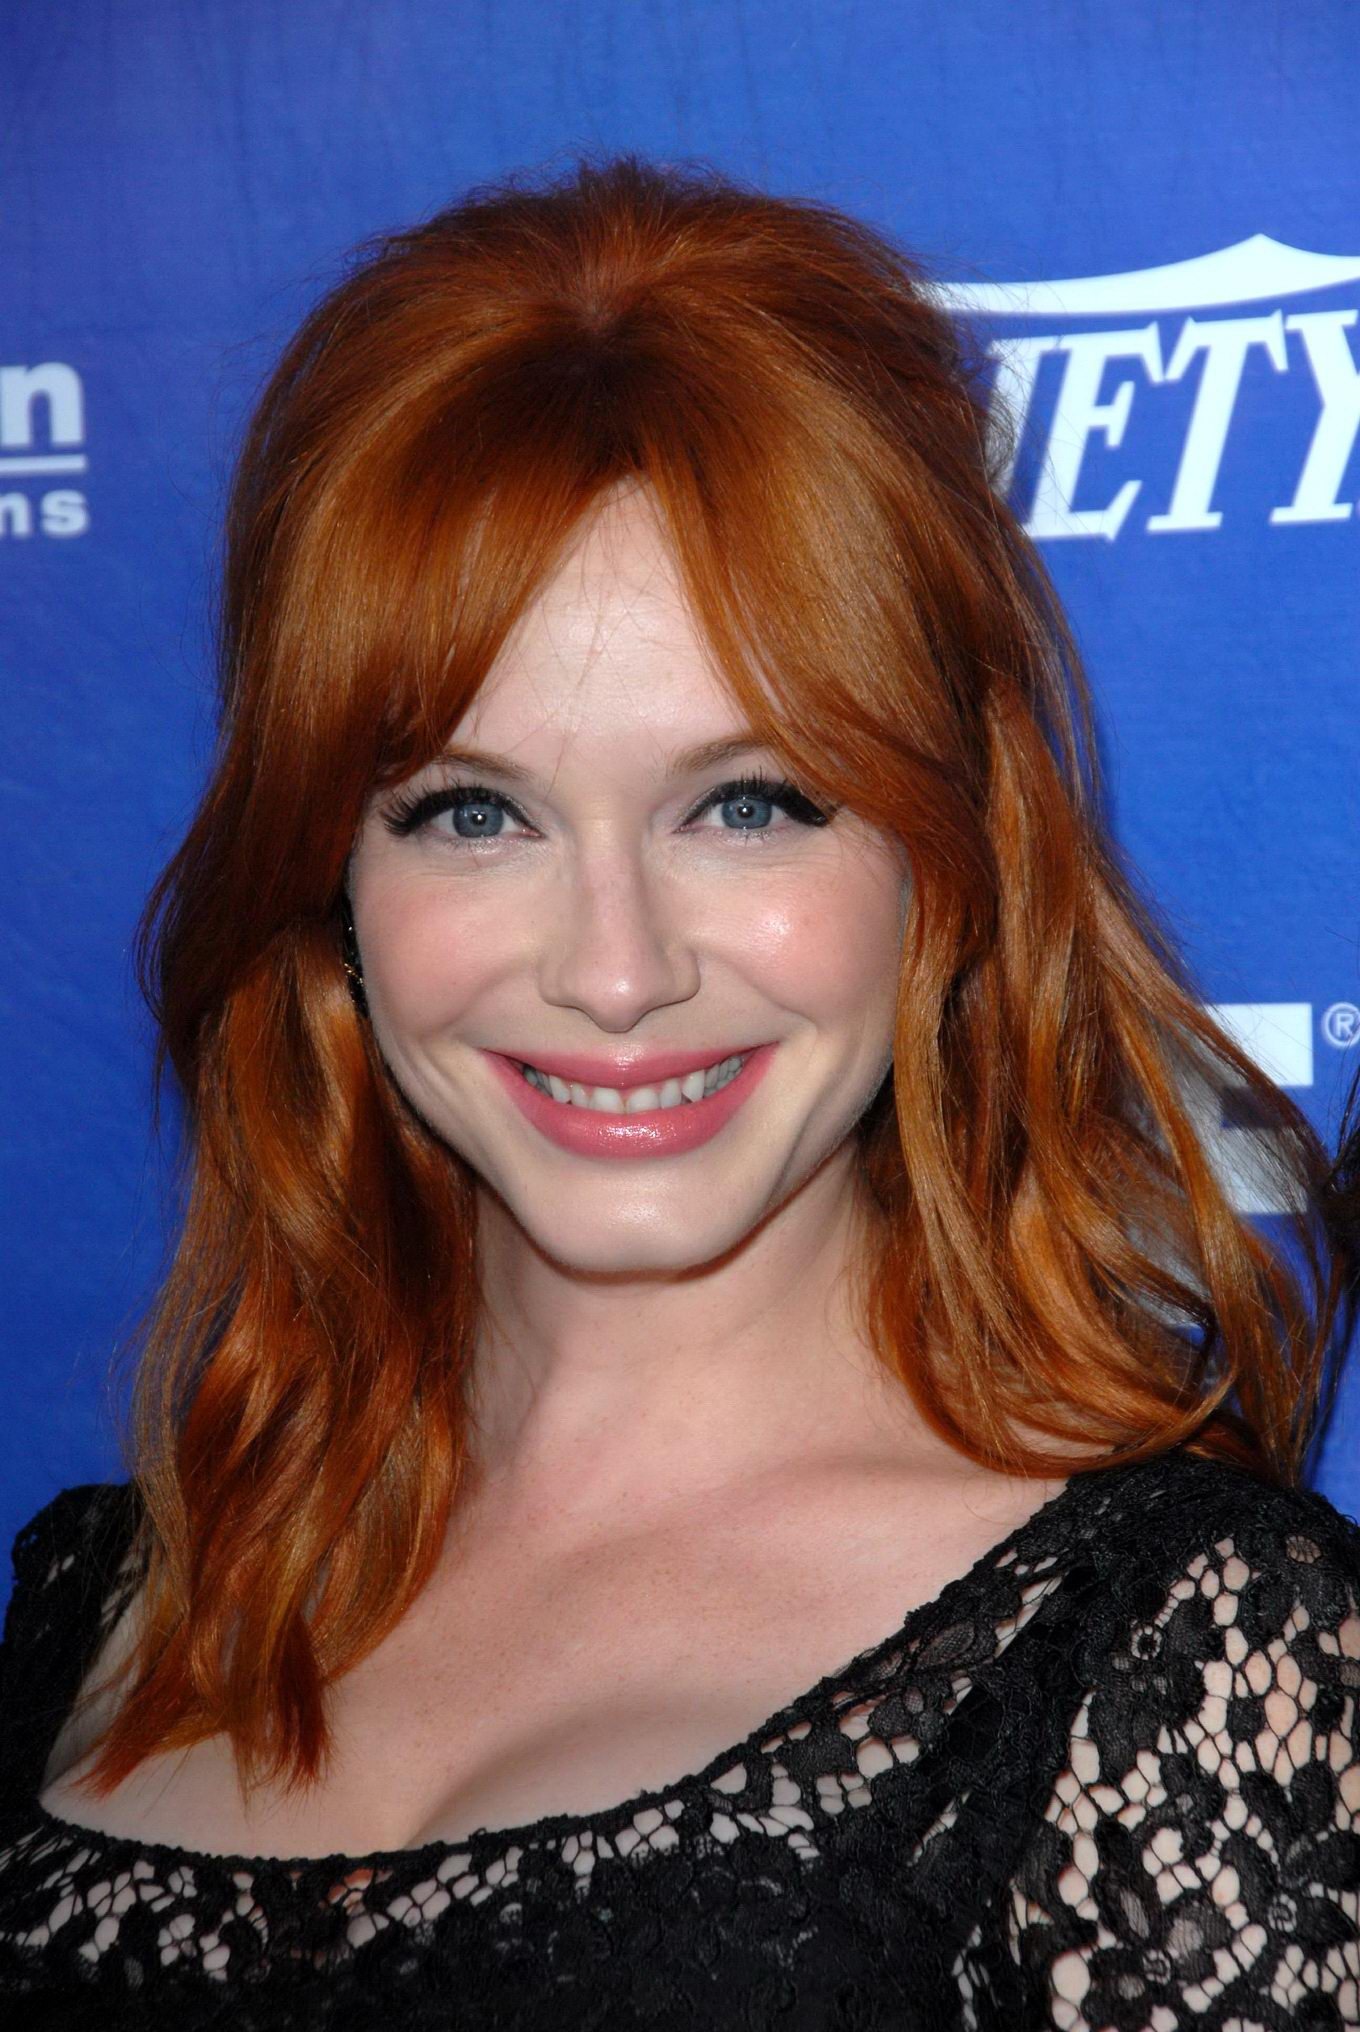 Christina Hendricks Shows Cleavage Wearing A Black Lace -1883